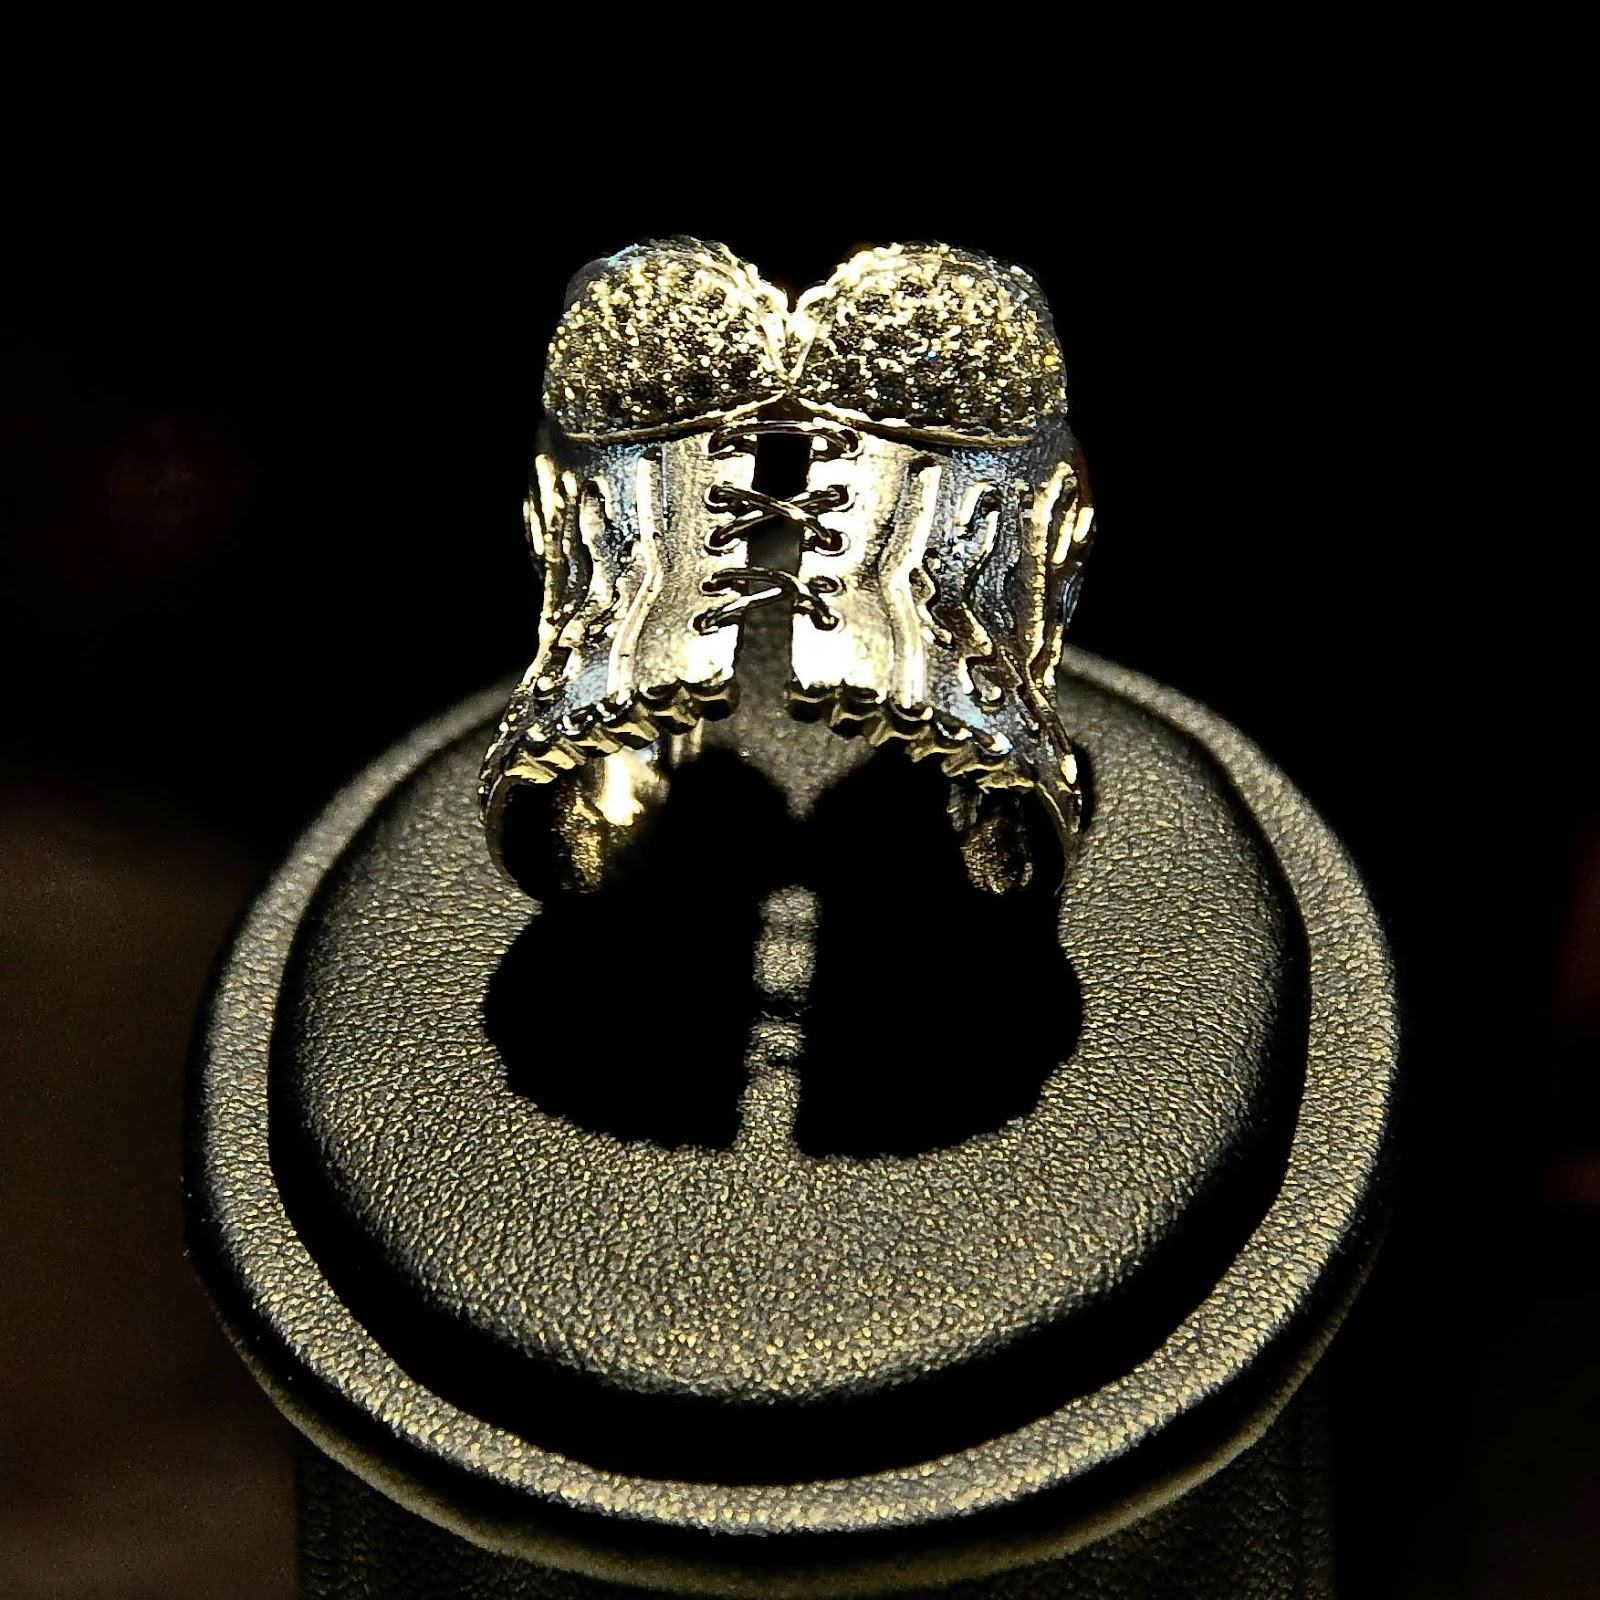 Corset ring by Antoaneta Ivanova of Antoanetta Fine Jewellery at Palladio's Basilica in Vicenza, Italy-2